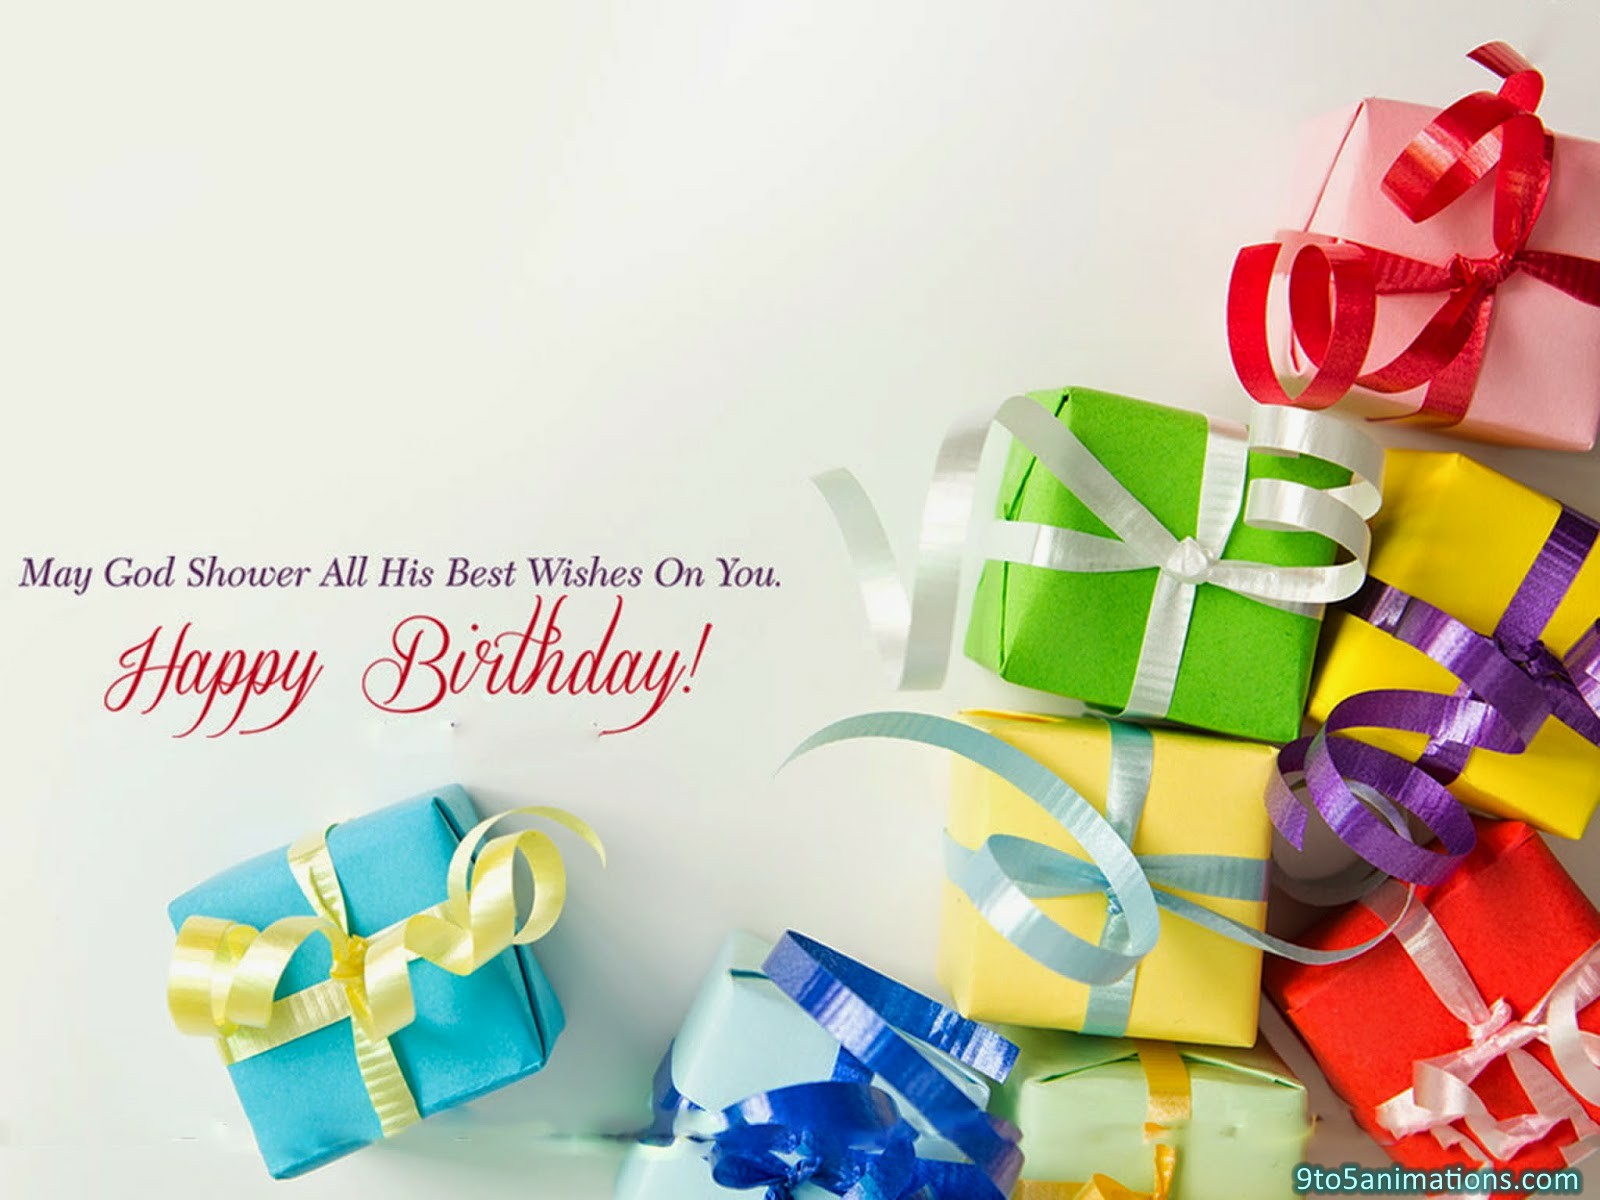 hd wallpaper happy birthday gifts ; Birthday-Gifts-HD-Wallpaper-free